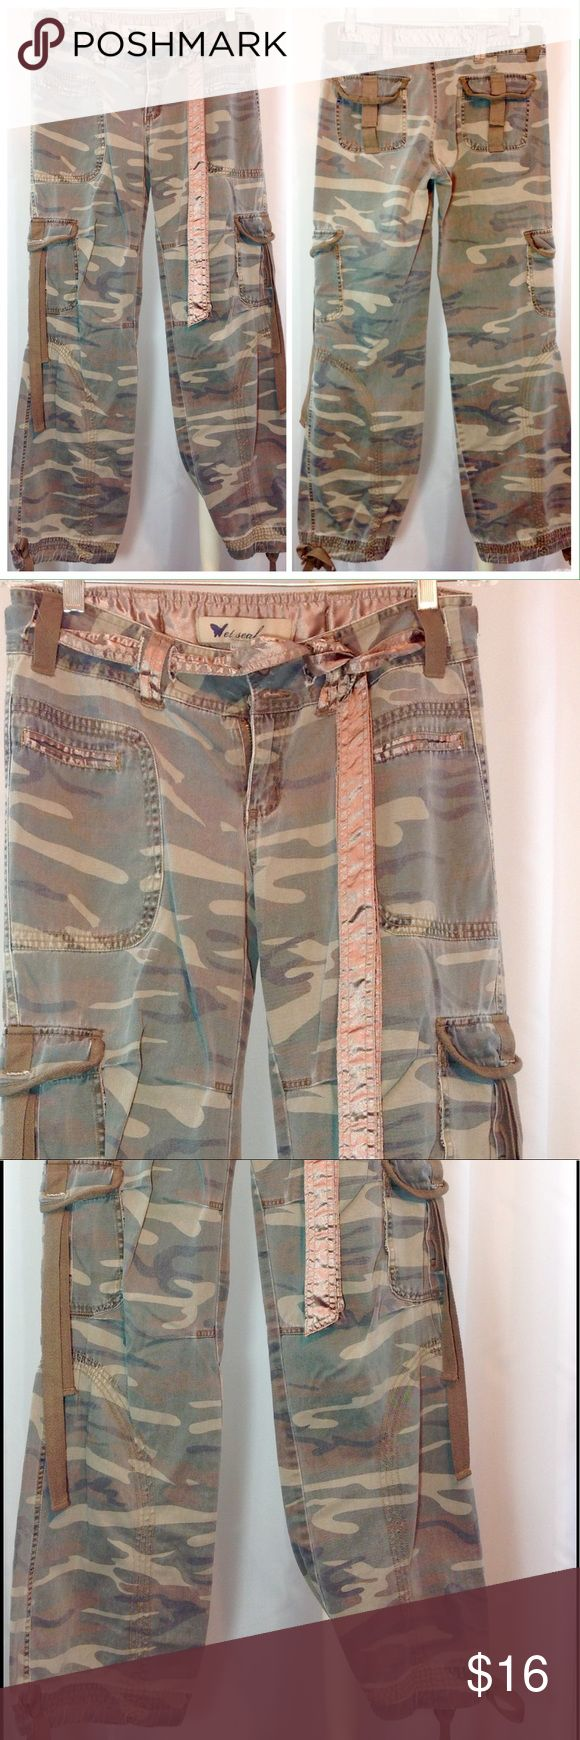 """Wet Seal Camo Cargo Style Ankle Pant Medium EUC Excellent condition! EUC. Camouflage cargo pant from wet seal. Lots of pockets, satin sash belt and satin trimmed hip pockets. Ankle and thigh pocket ties in cotton nylon. Great details! Size Medium. Waist 15""""across flat. Inseam 30"""".🔹Please ask all your questions before you purchase!  🔹Sorry, no trades or holds. 🔹Please use Offer Button! 🔹Bundle for your best prices! Wet Seal Pants Ankle & Cropped"""